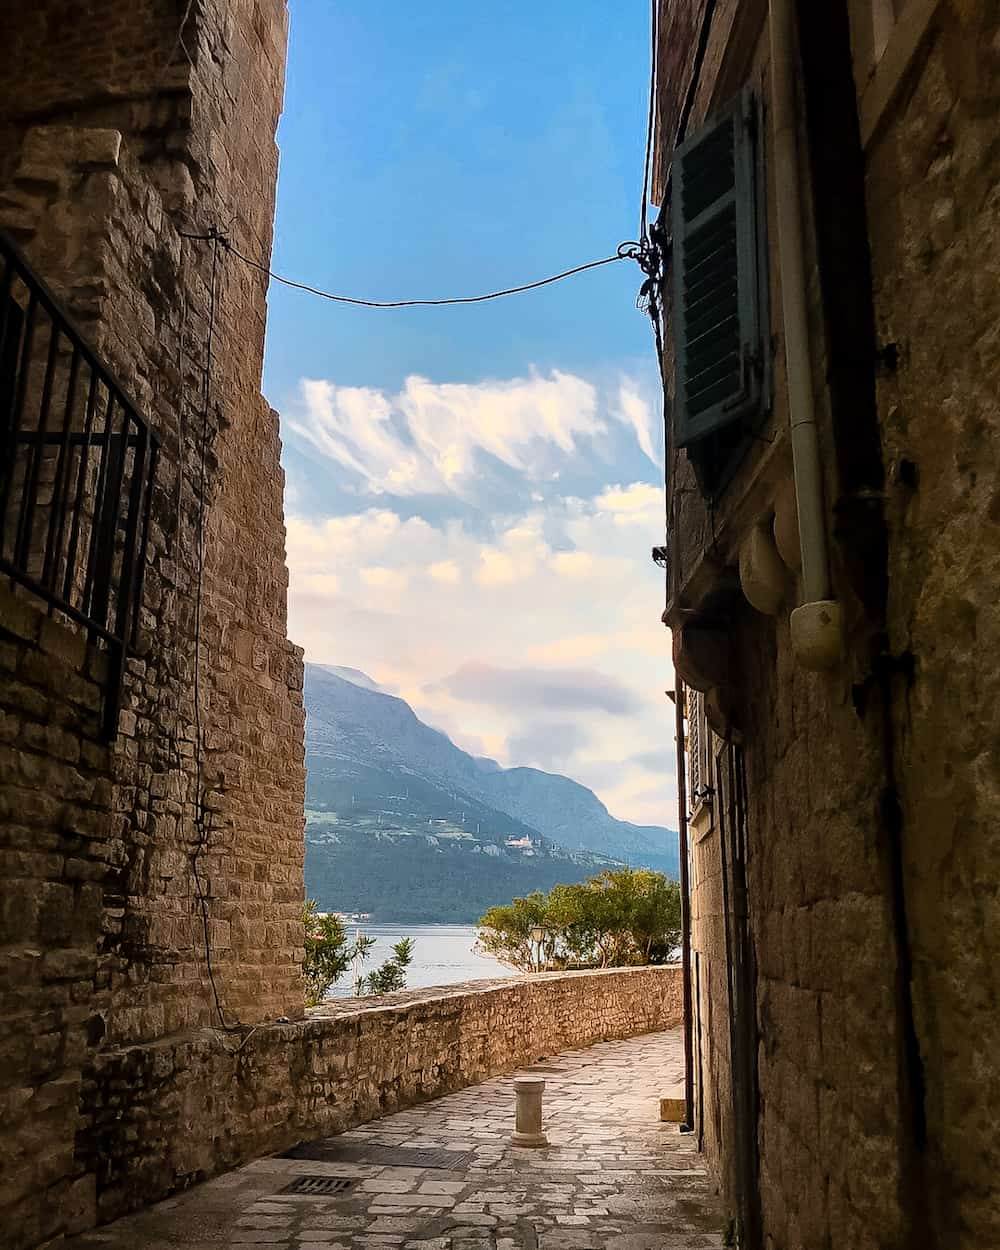 Image of Korcula Old town